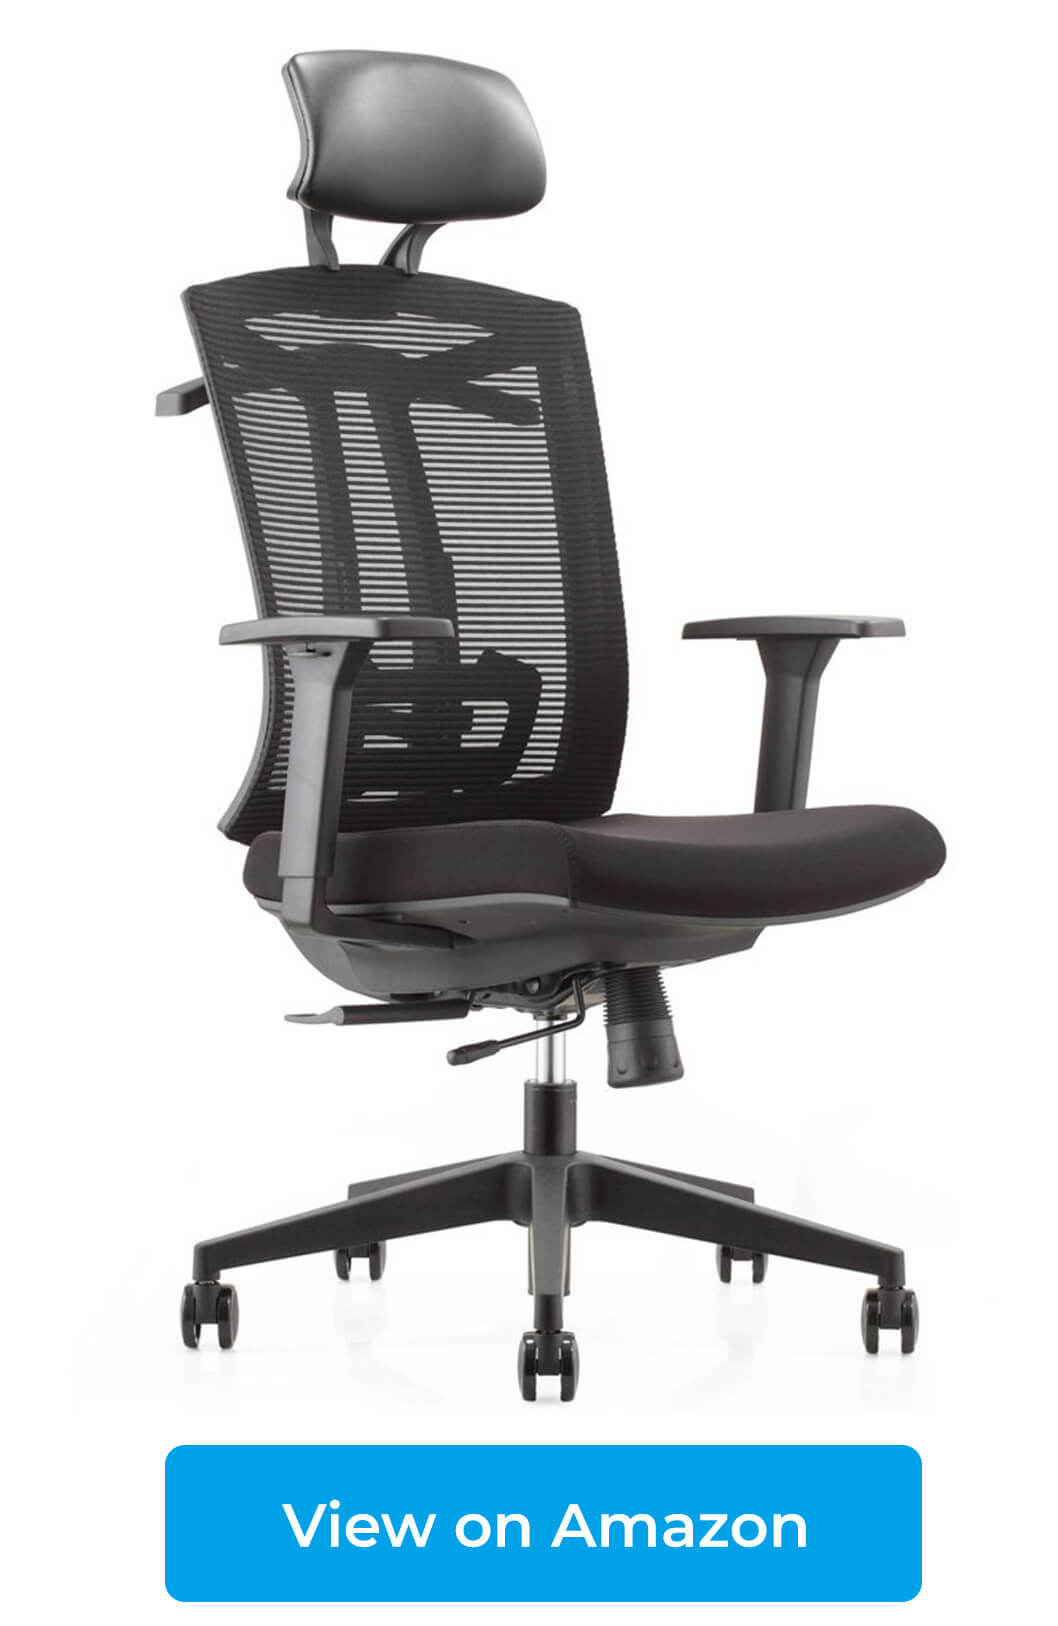 CMO Ergonomic Office Chair is most similar to Herman Miller Embody